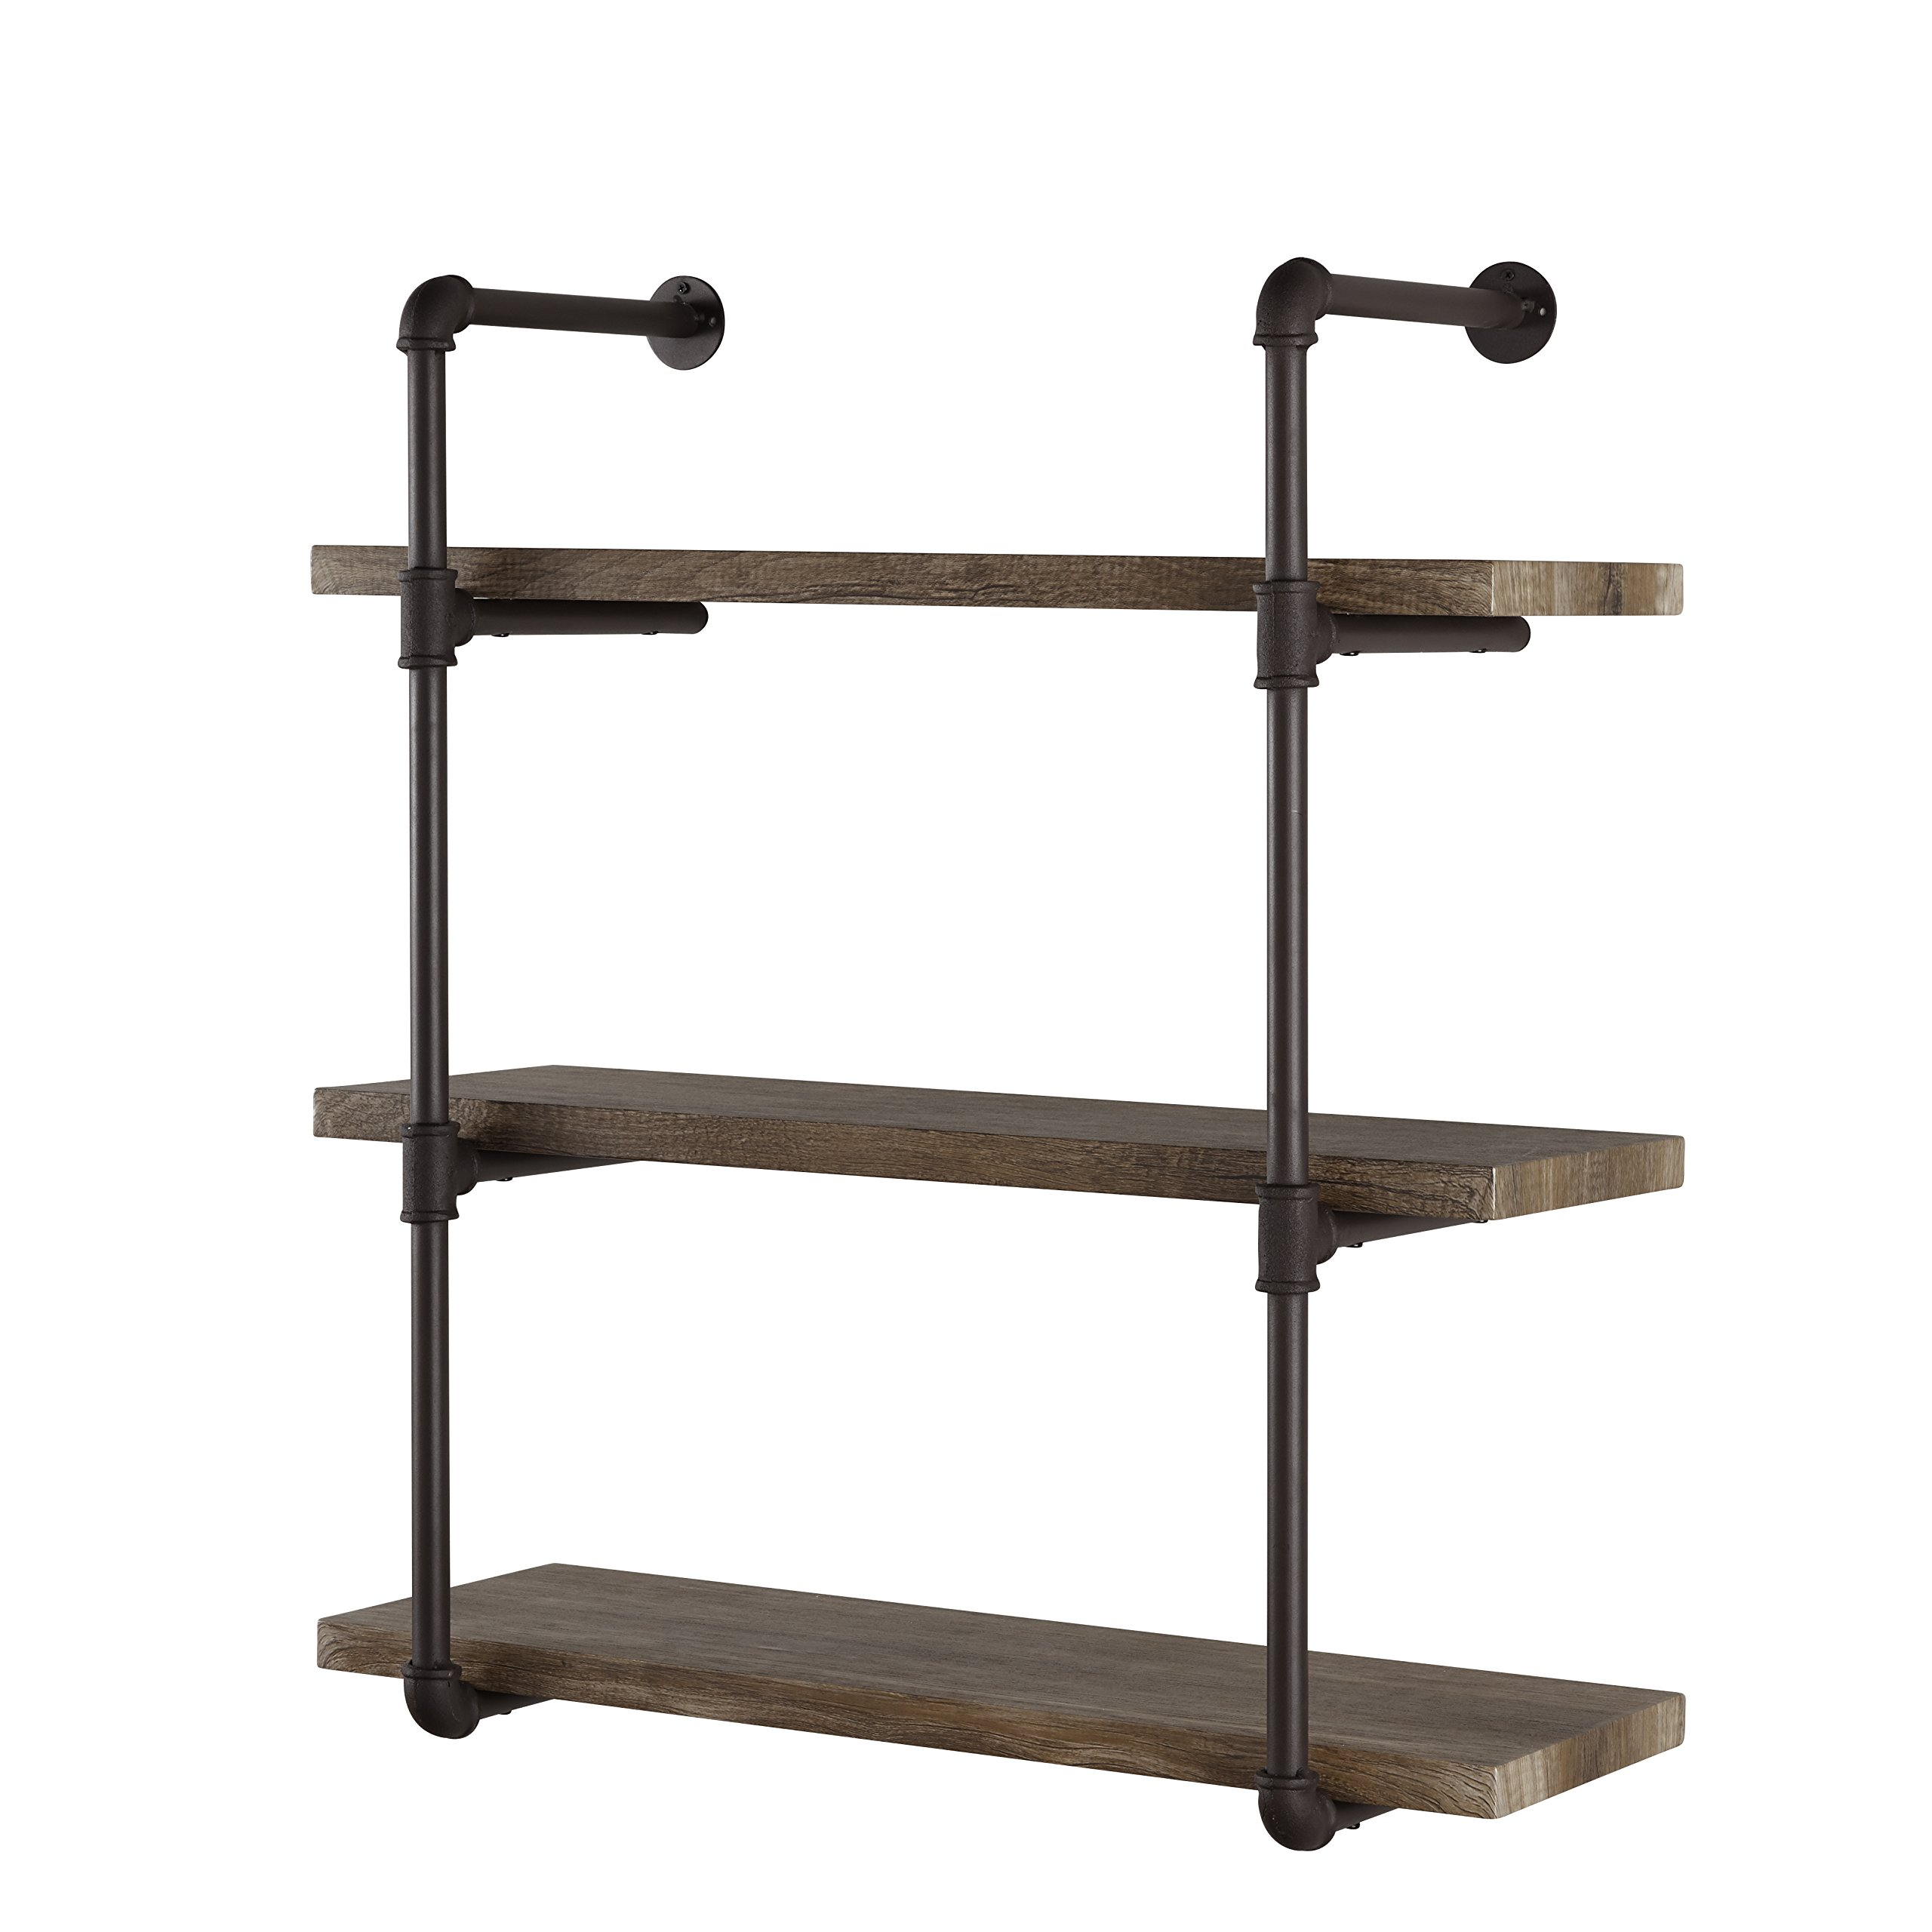 Danya B. GH073 Pipe Wall Shelves, Brown